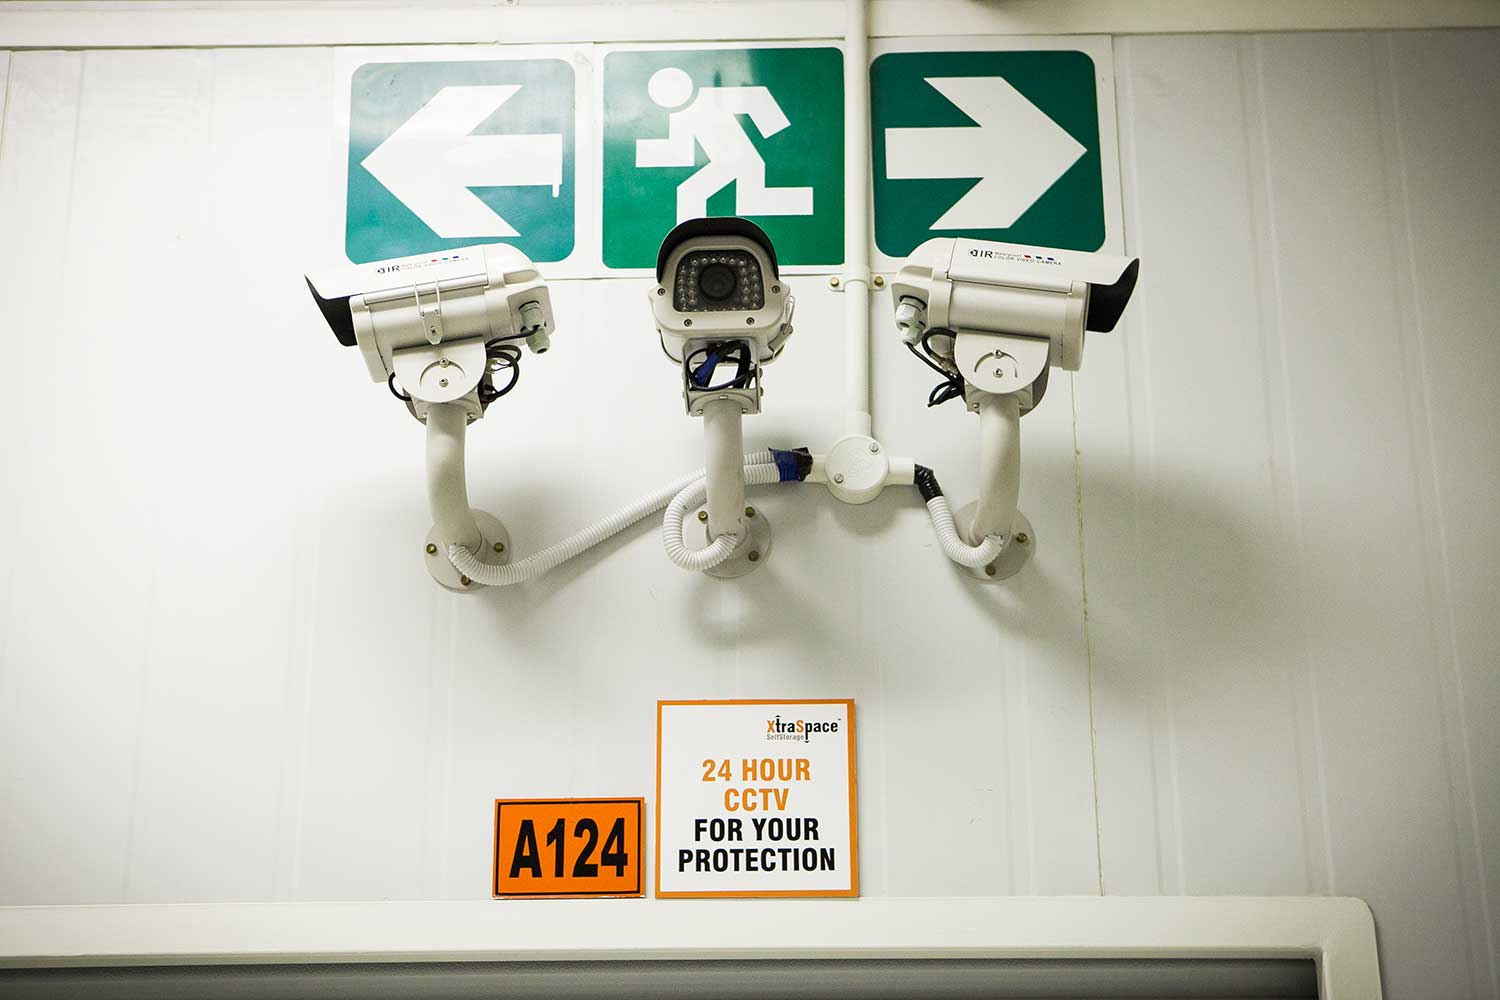 Security cameras at XtraSpace Commissioner Street